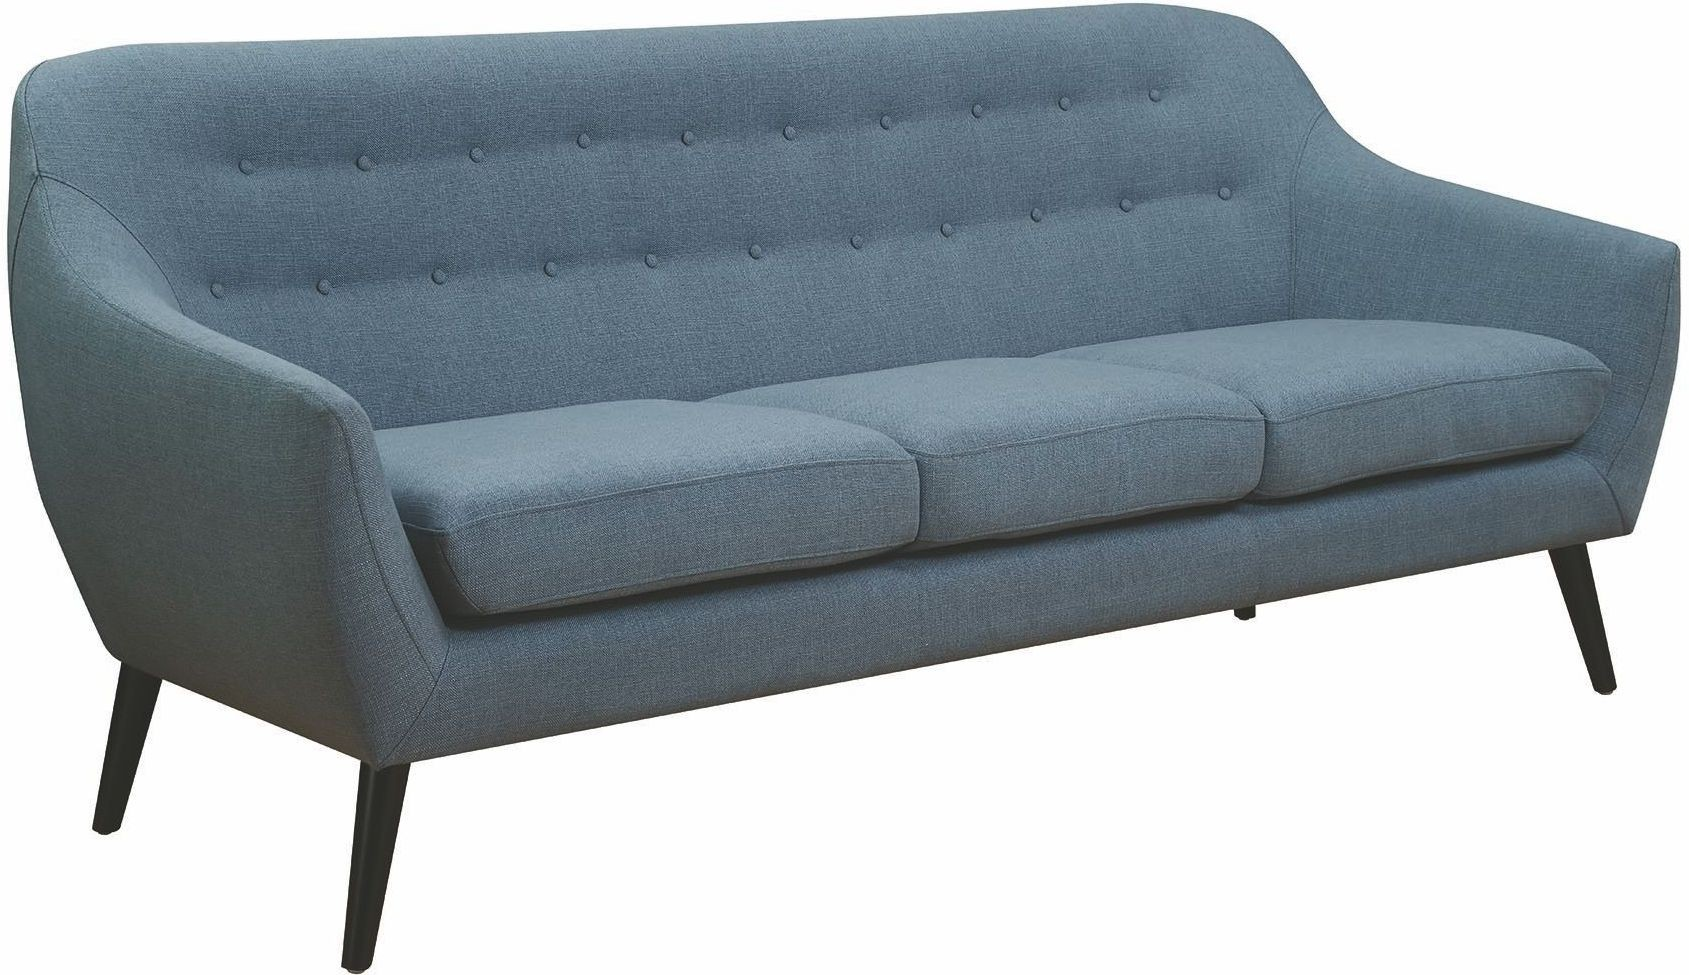 Dawson Aqua Sofa 505347 Coaster Furniture